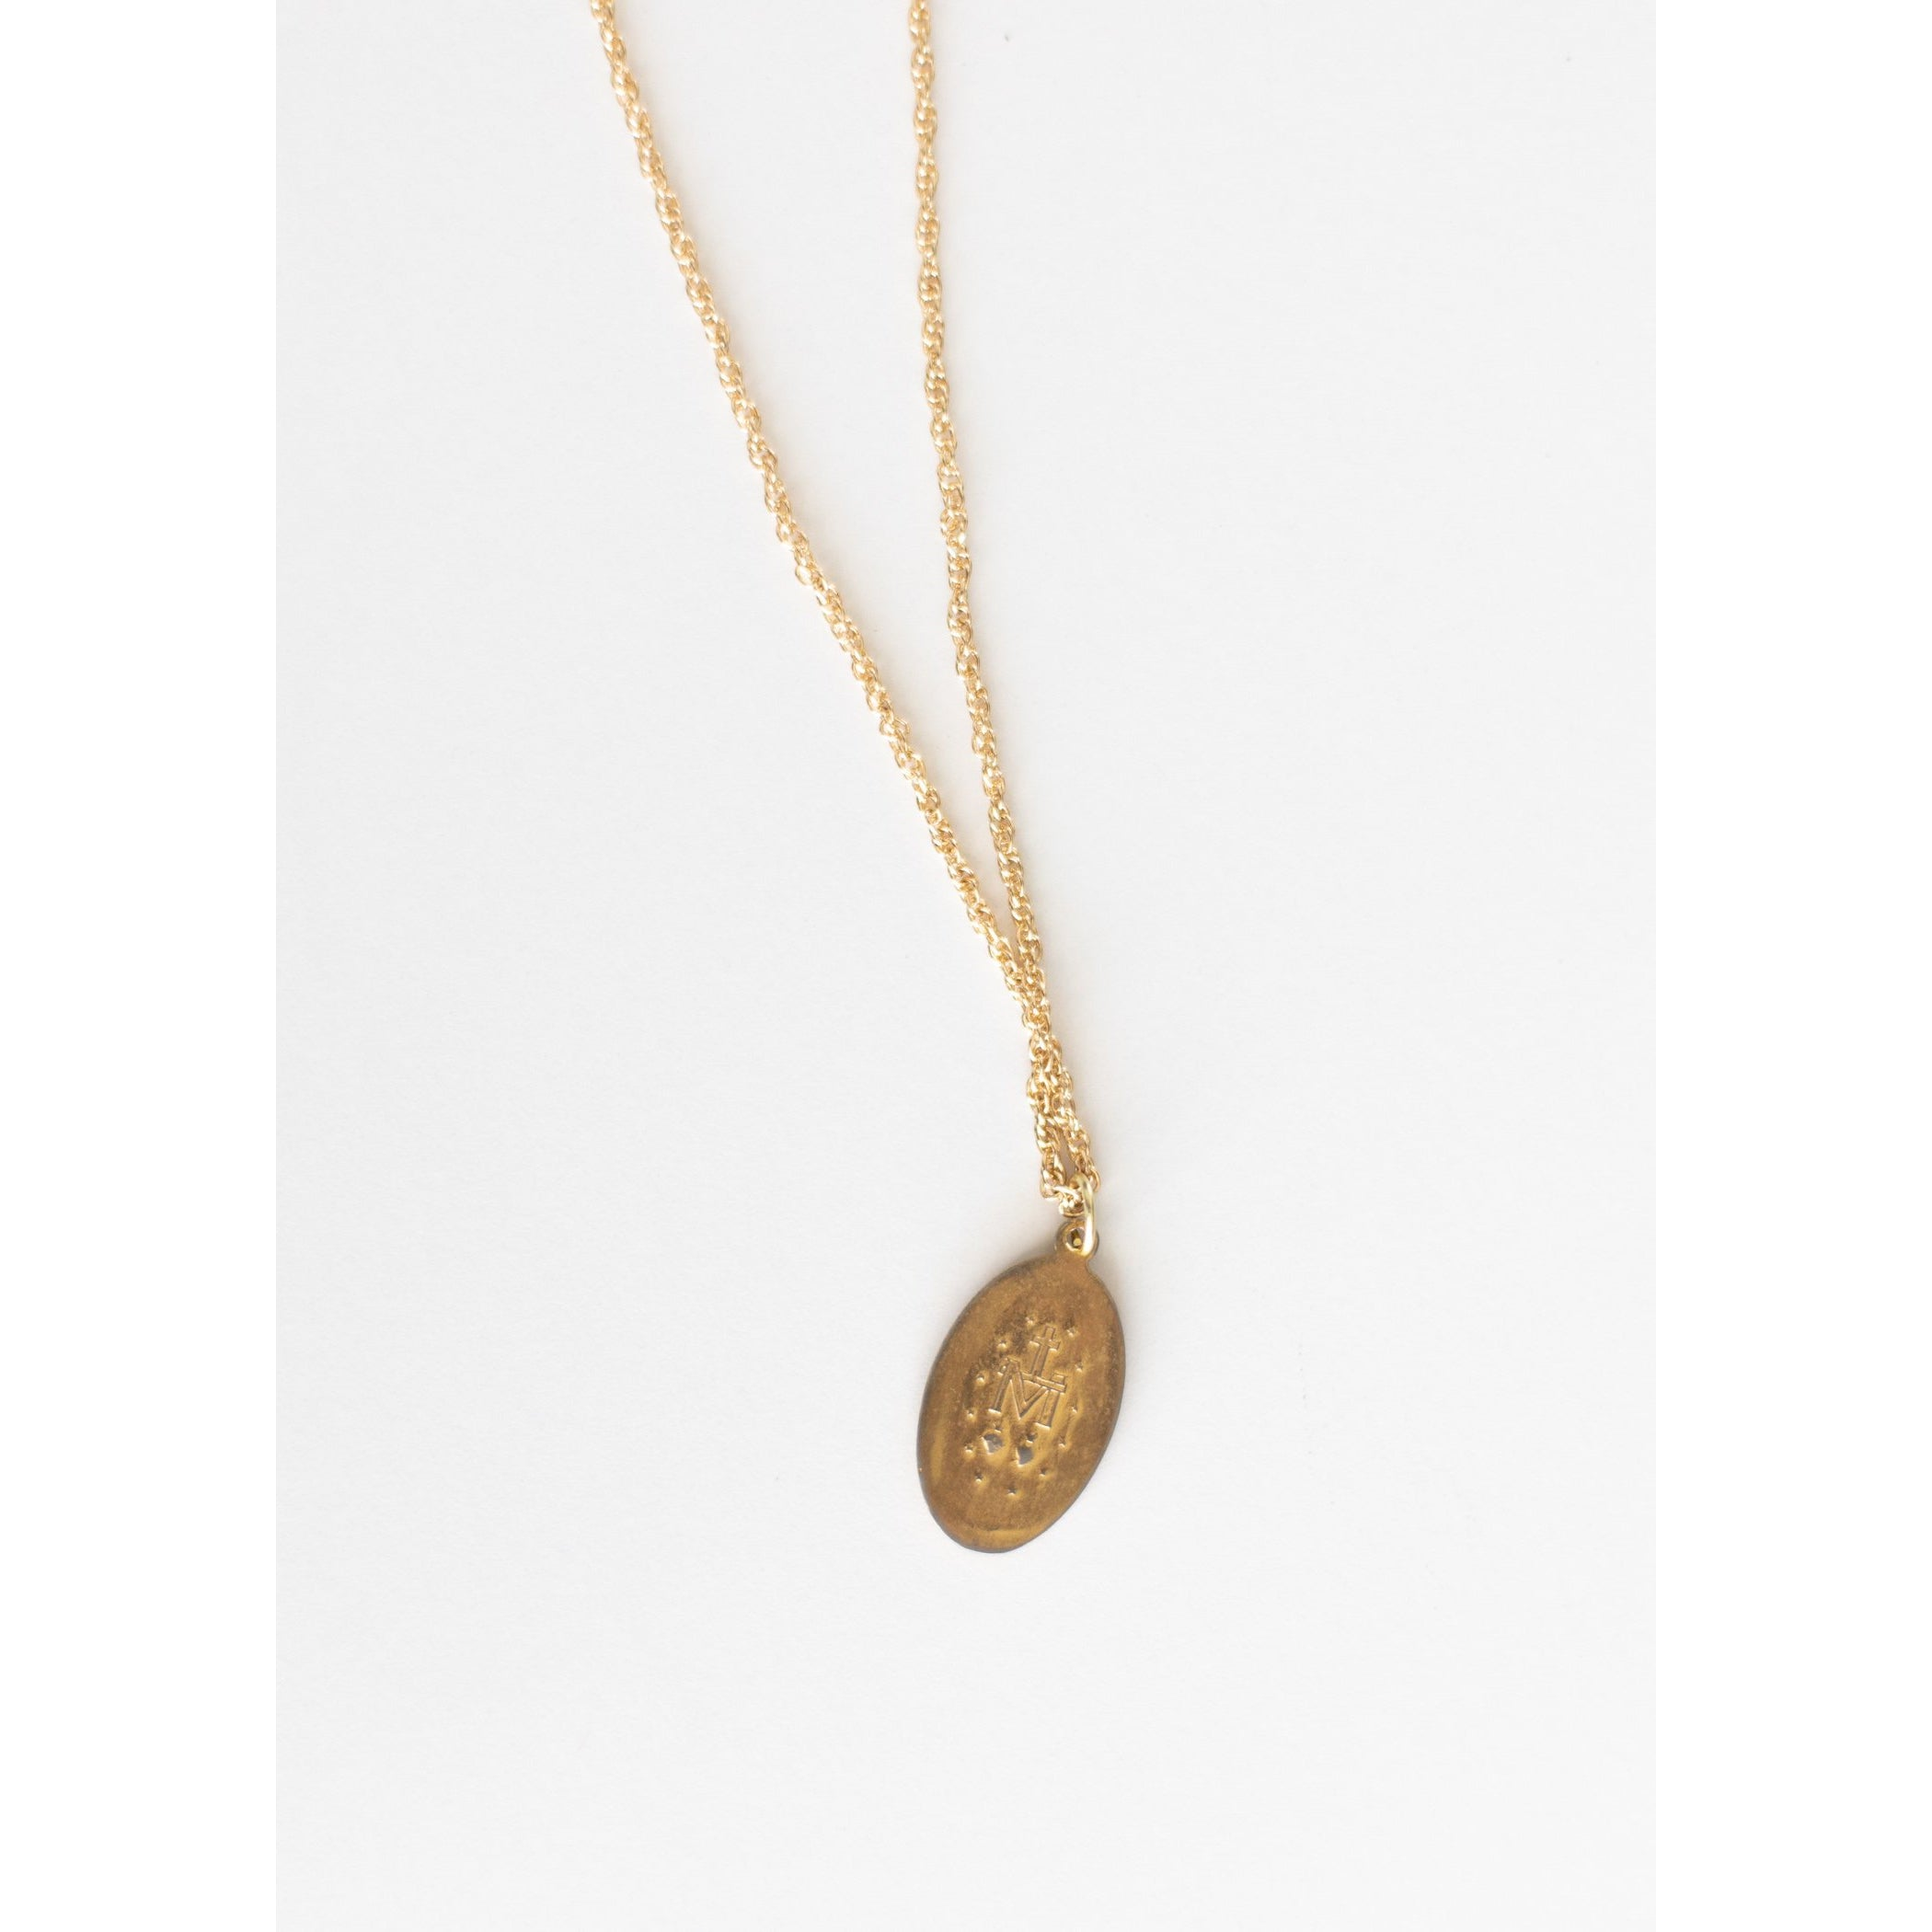 The Miraculous Medal Gold Necklace